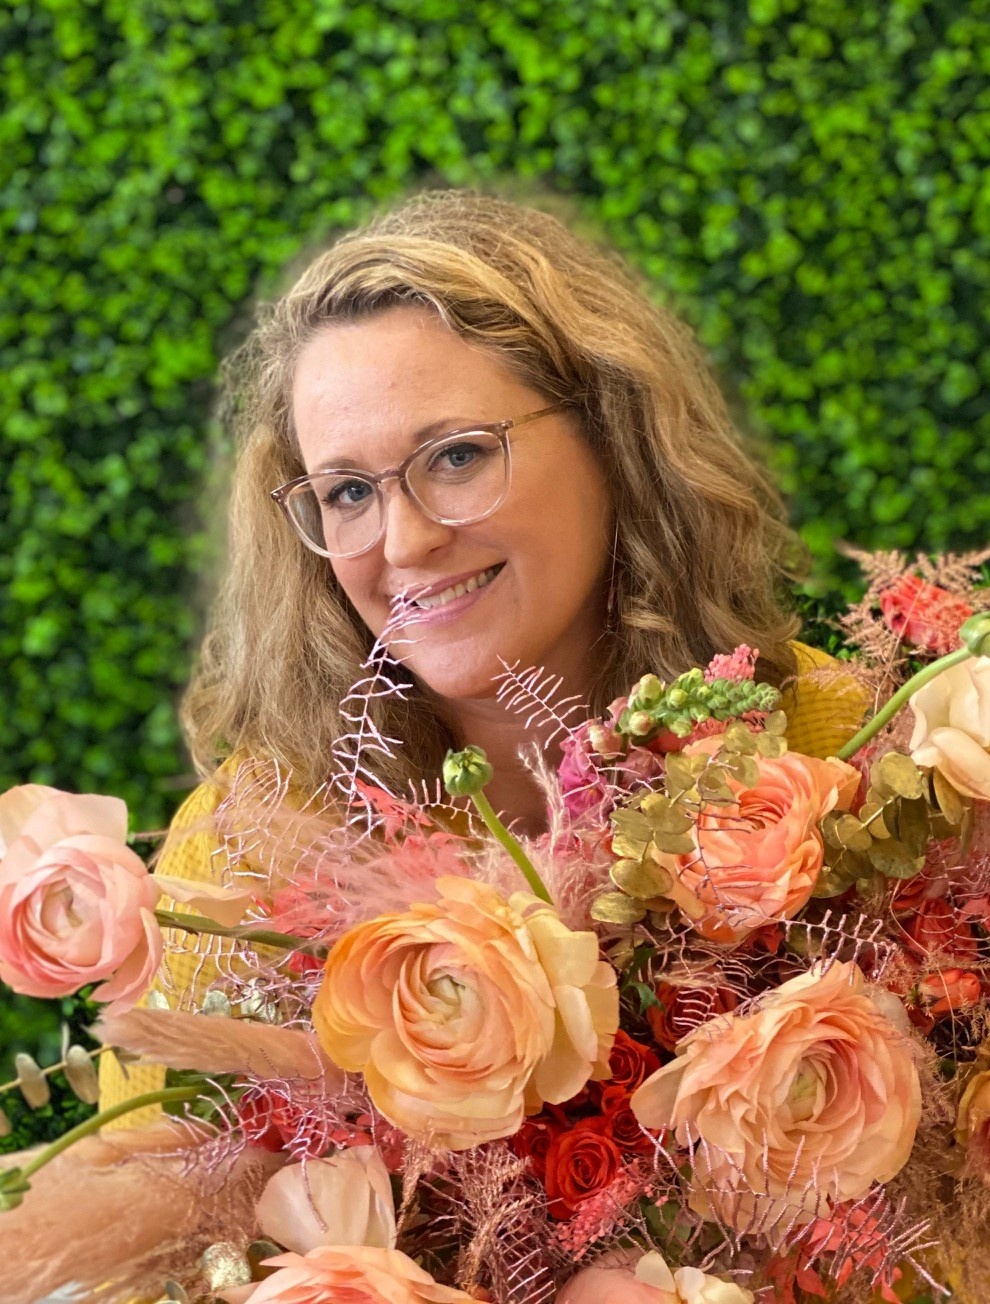 woman smiling holding a bouquet of flowers in orange pink and peach forViva La Flora Live Podcast